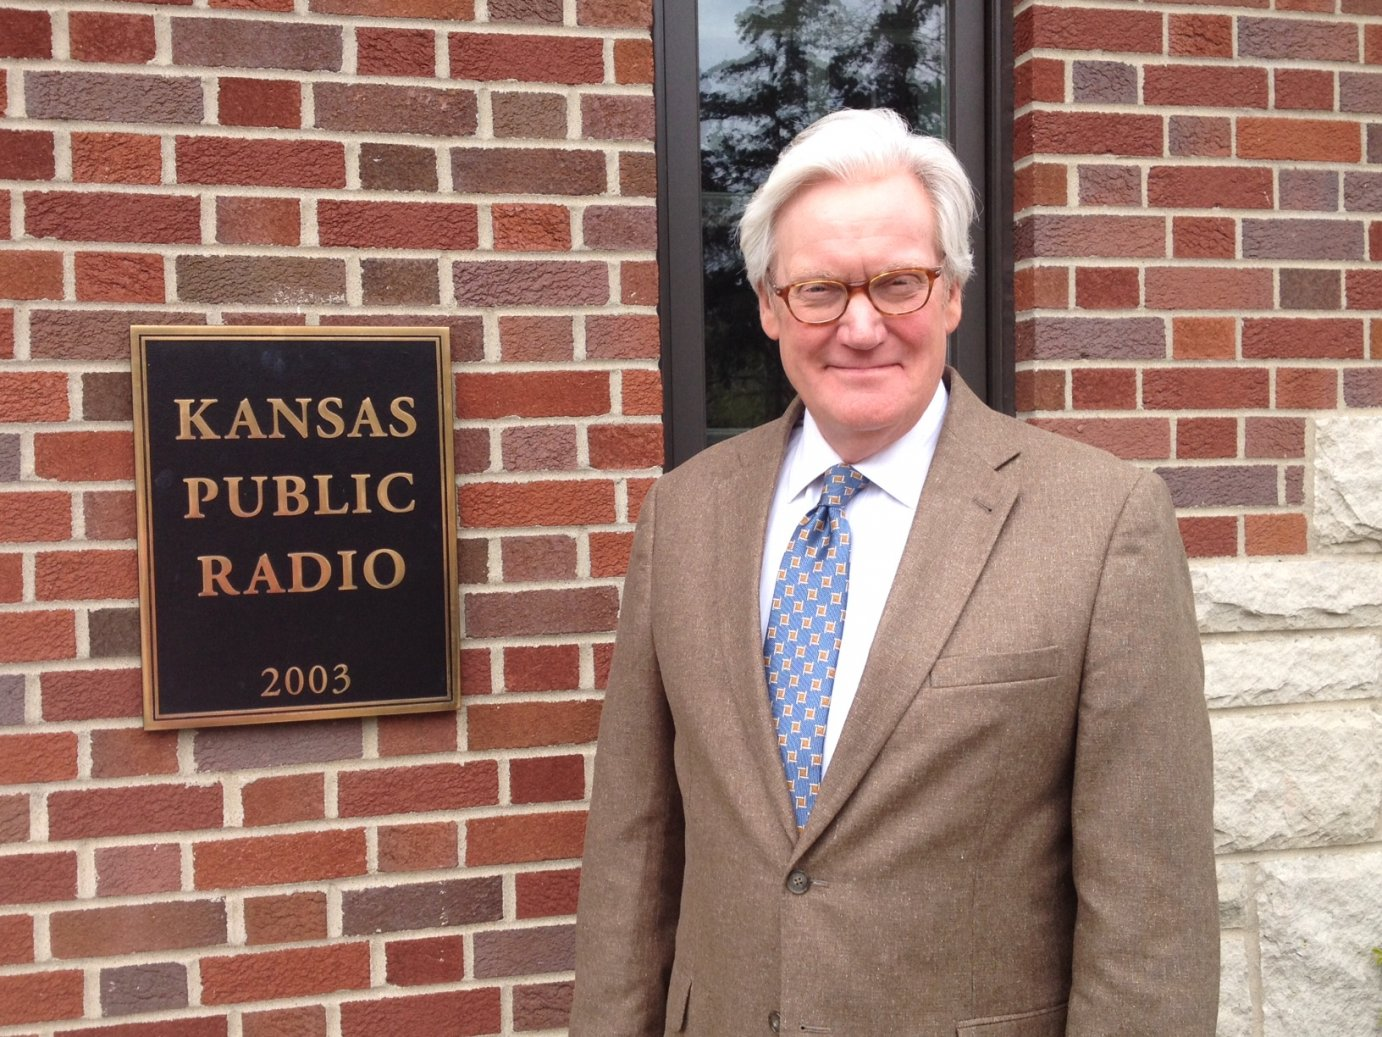 NBC's Bob Dotson outside Broadcasting Hall on the KU campus (Photo by J. Schafer)